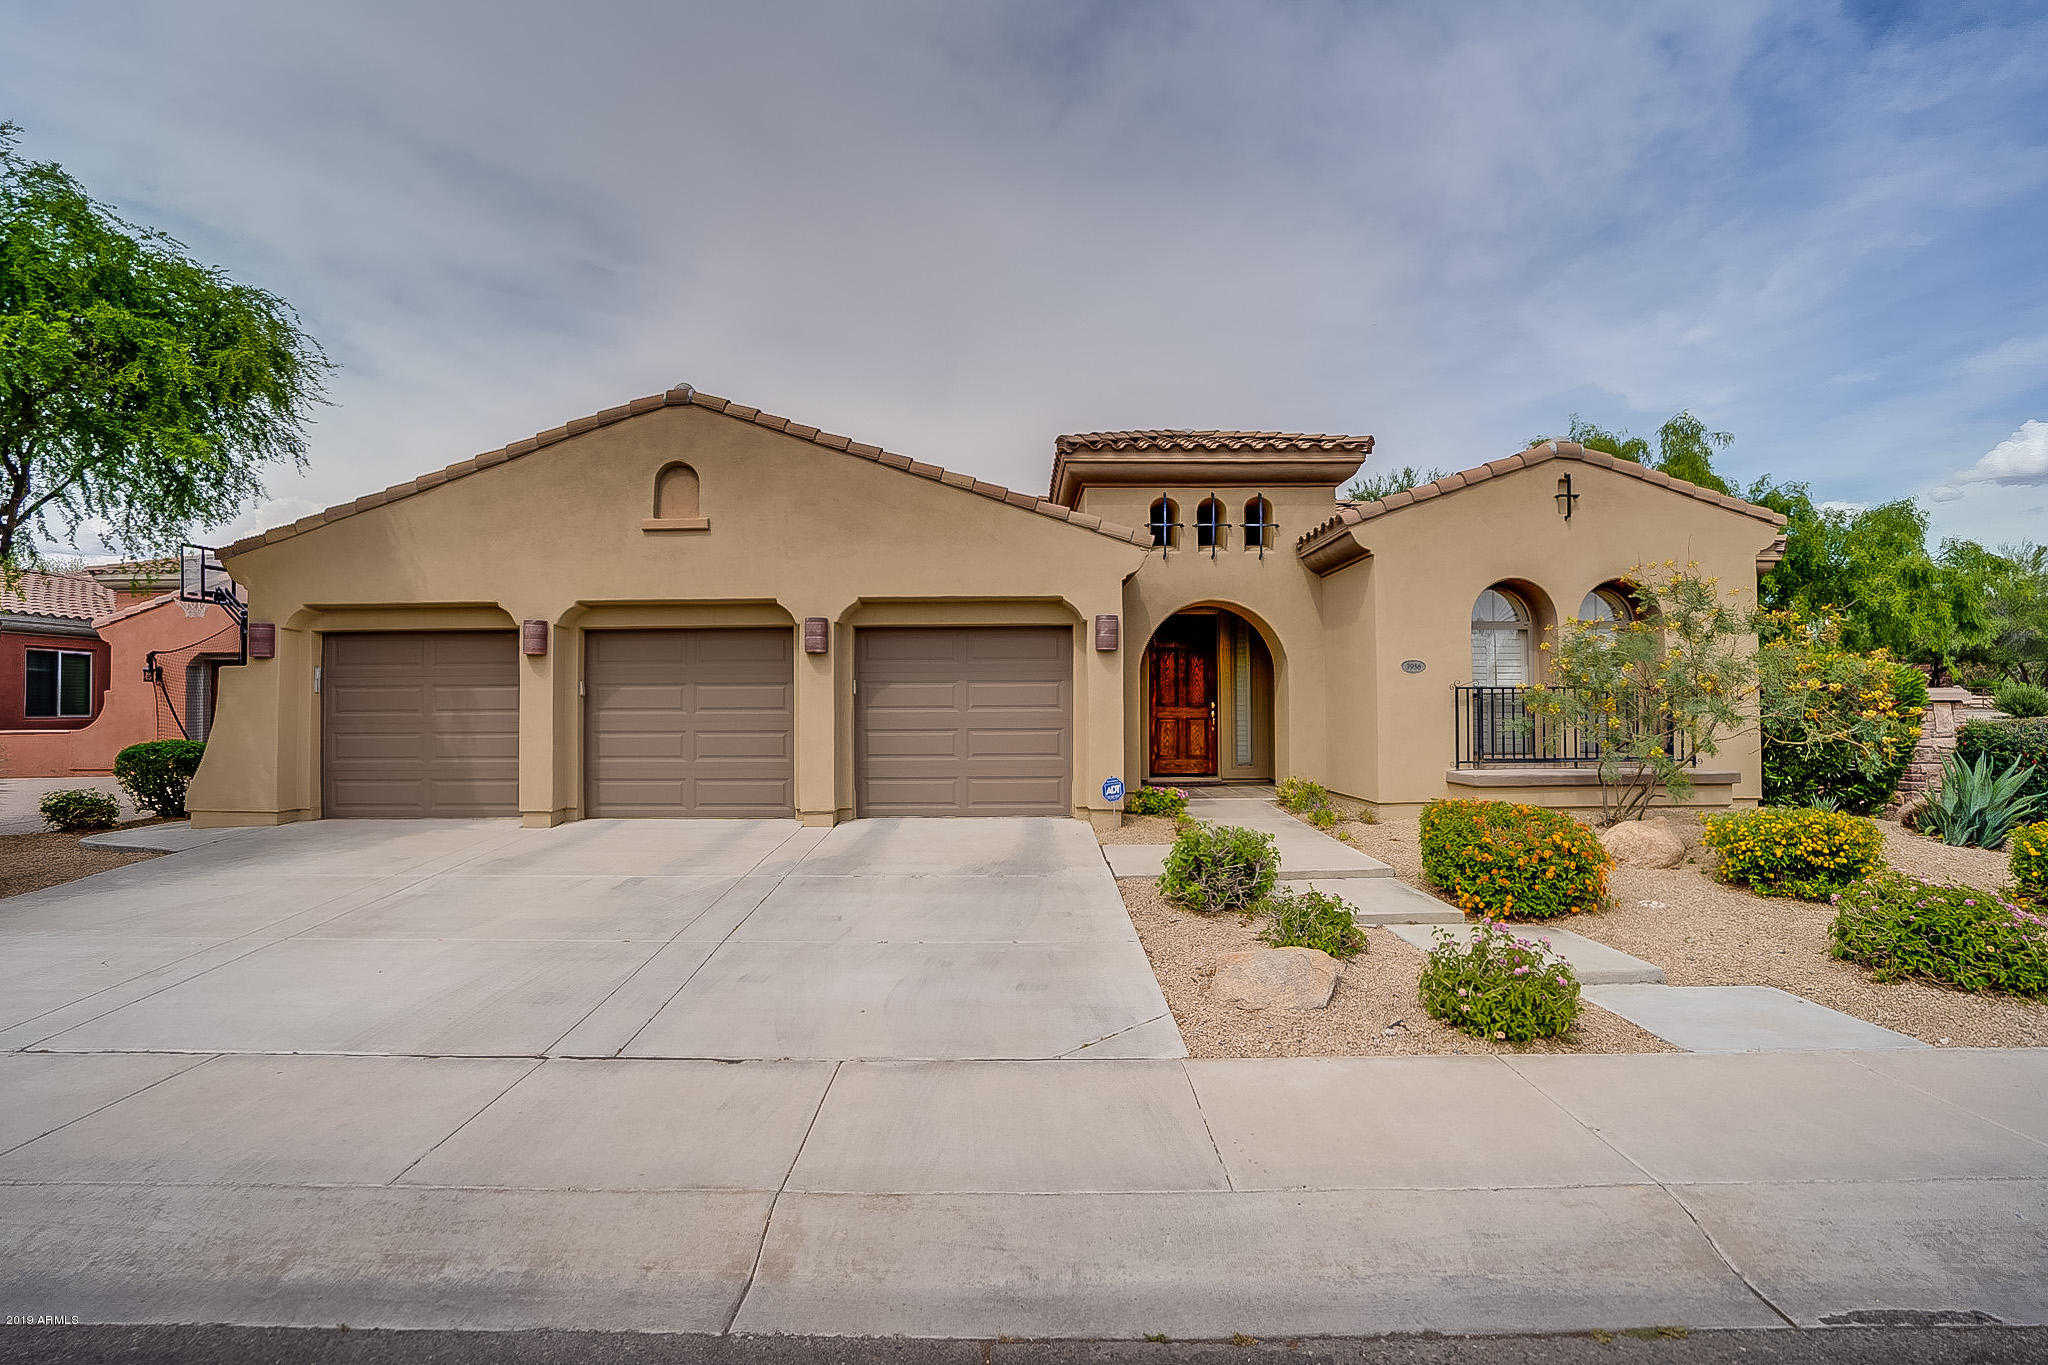 $699,000 - 4Br/4Ba - Home for Sale in Aviano, Phoenix